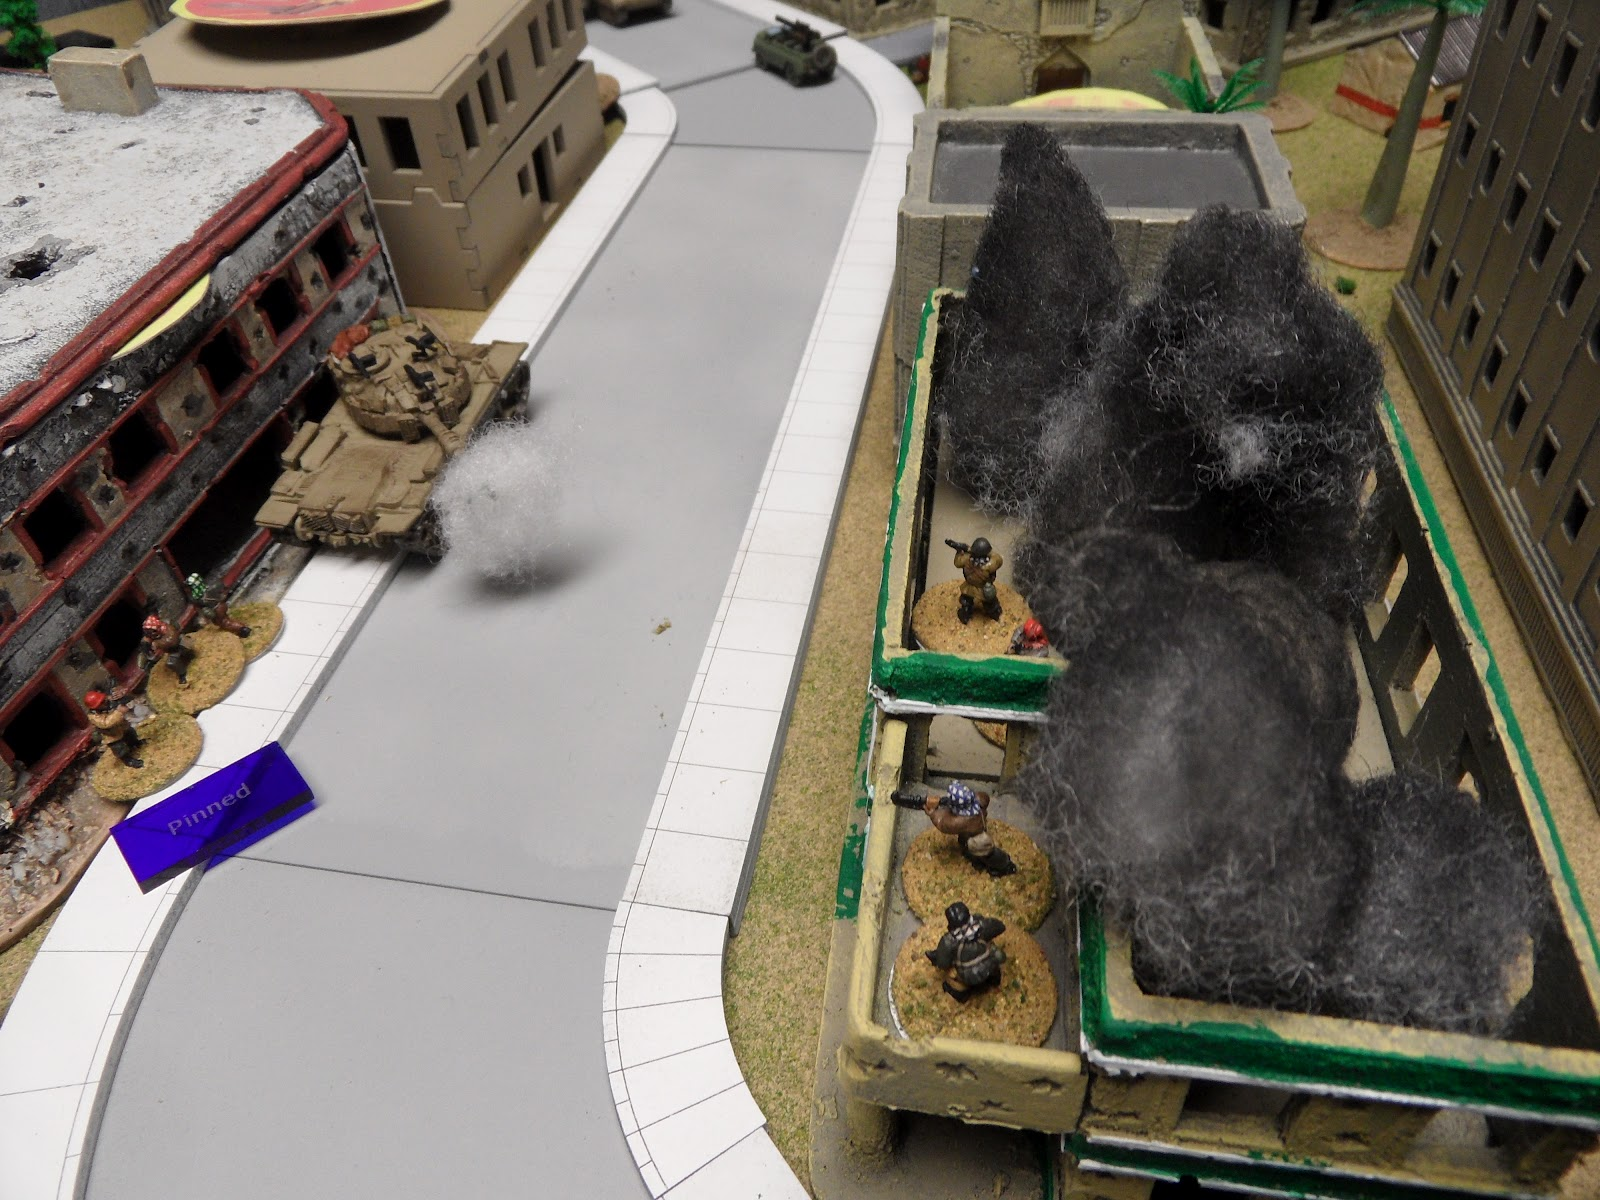 The Magach lights up a second building, wrecking that one as well.